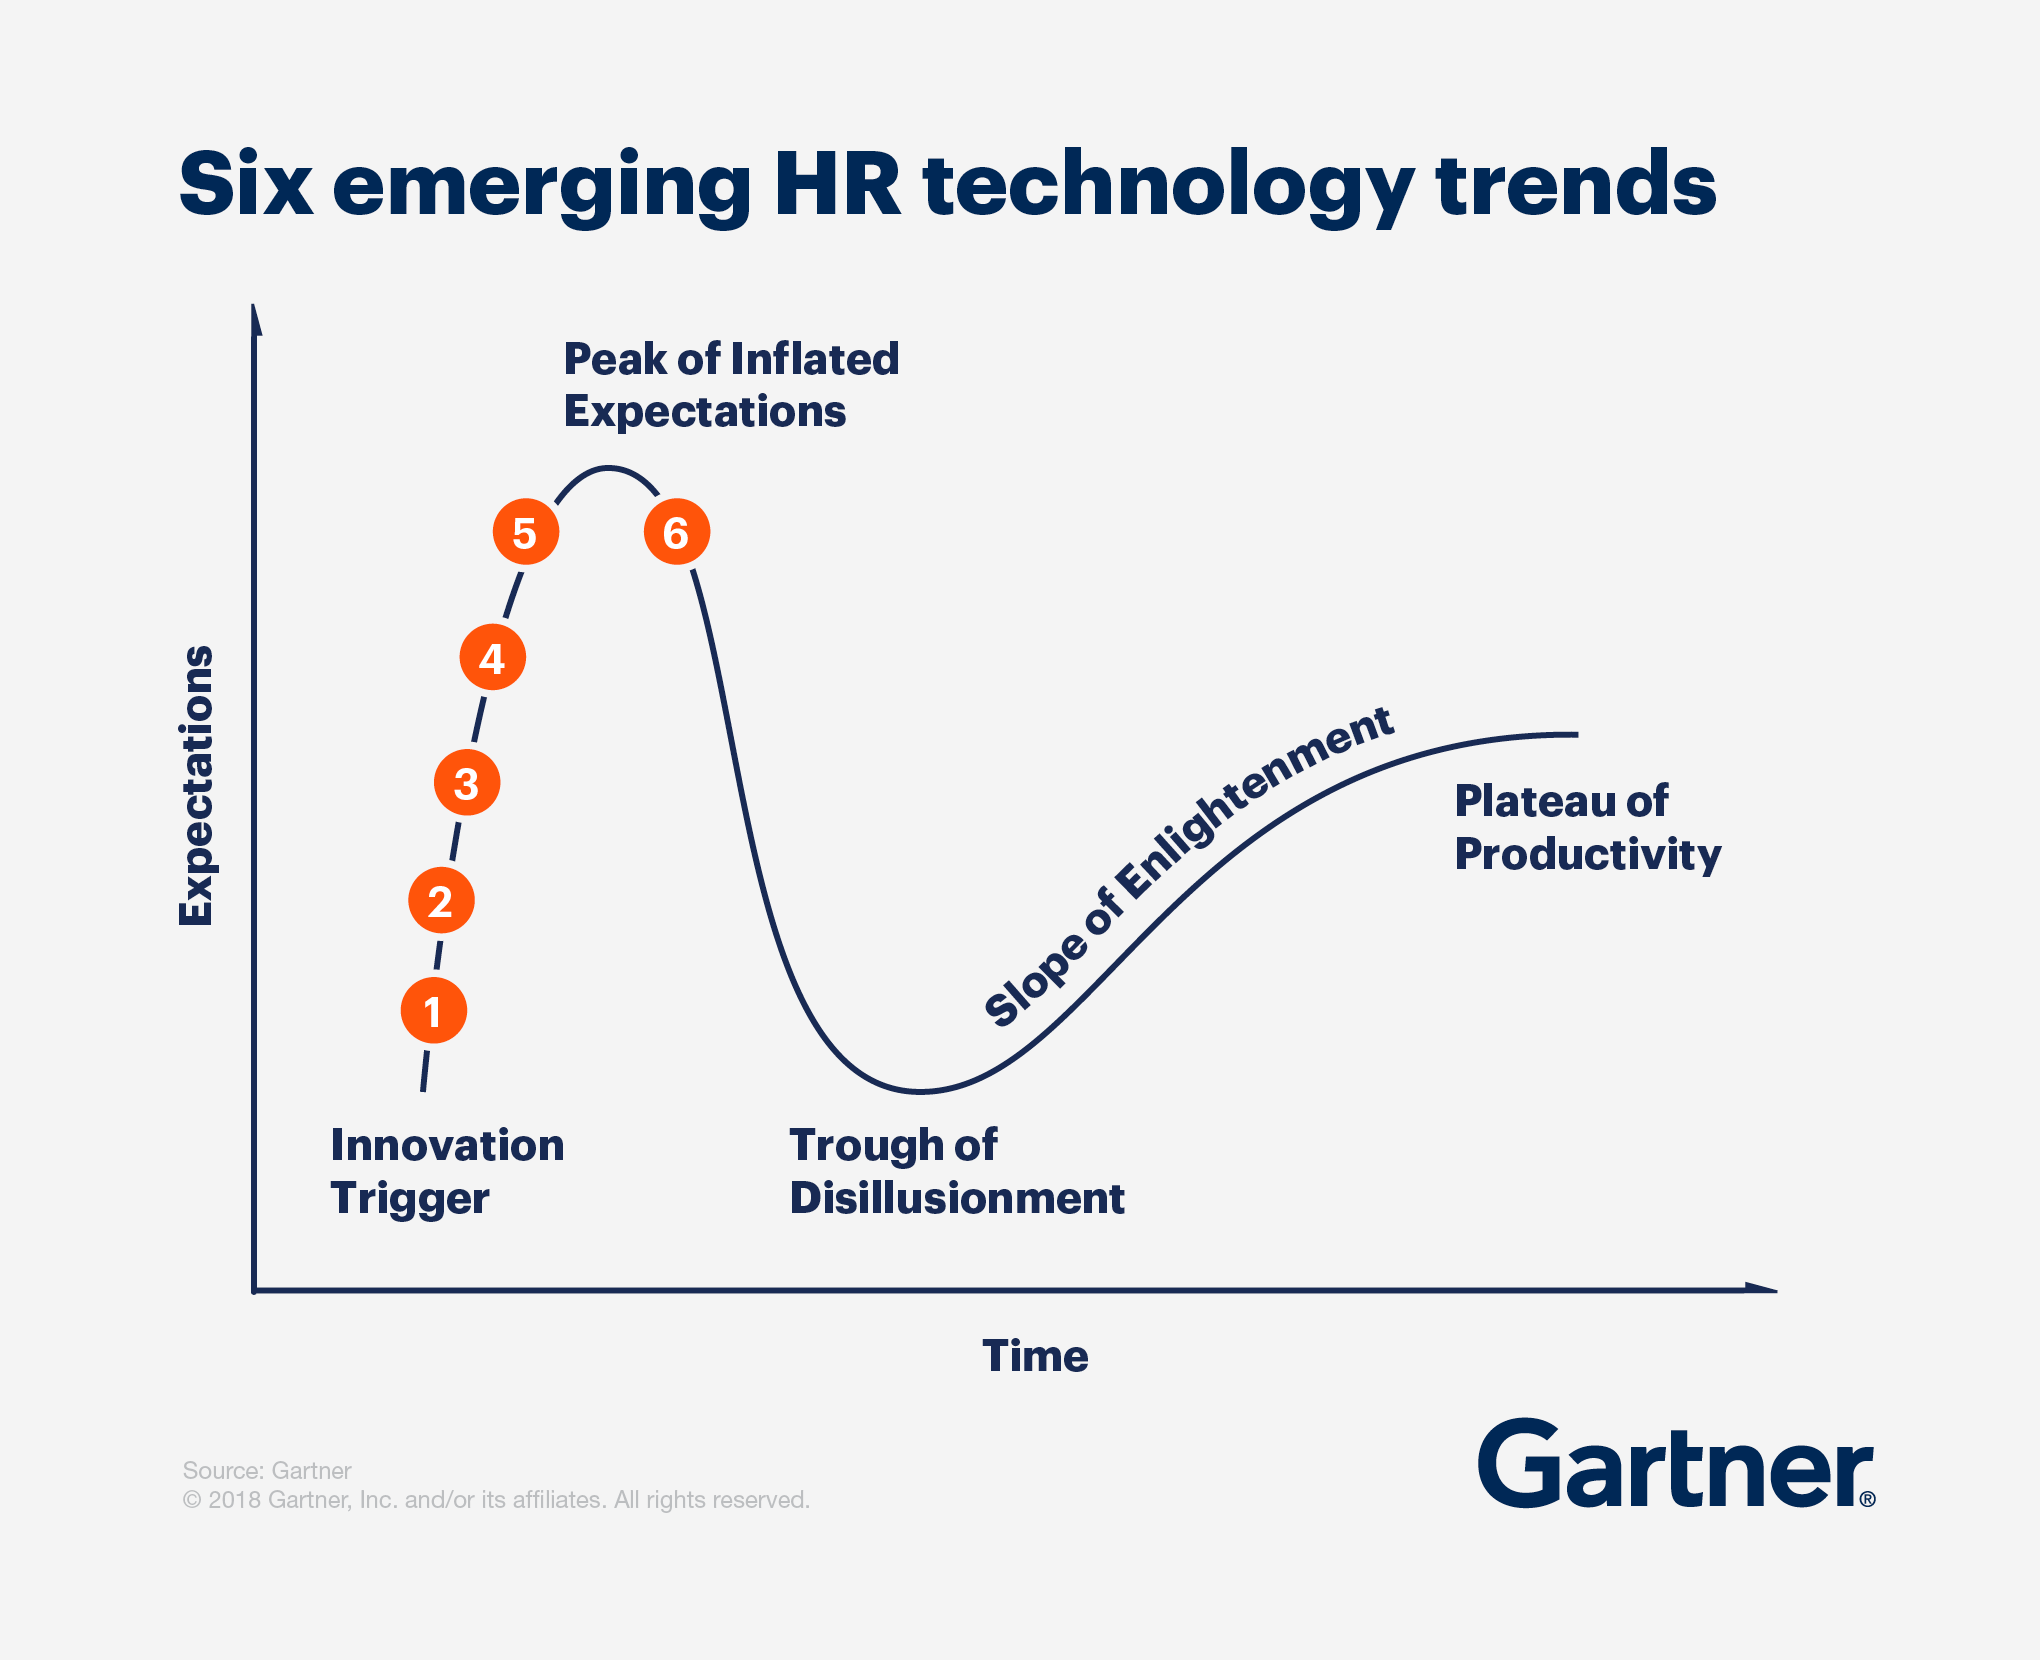 Emerging HR technology Trends Hype Cycle